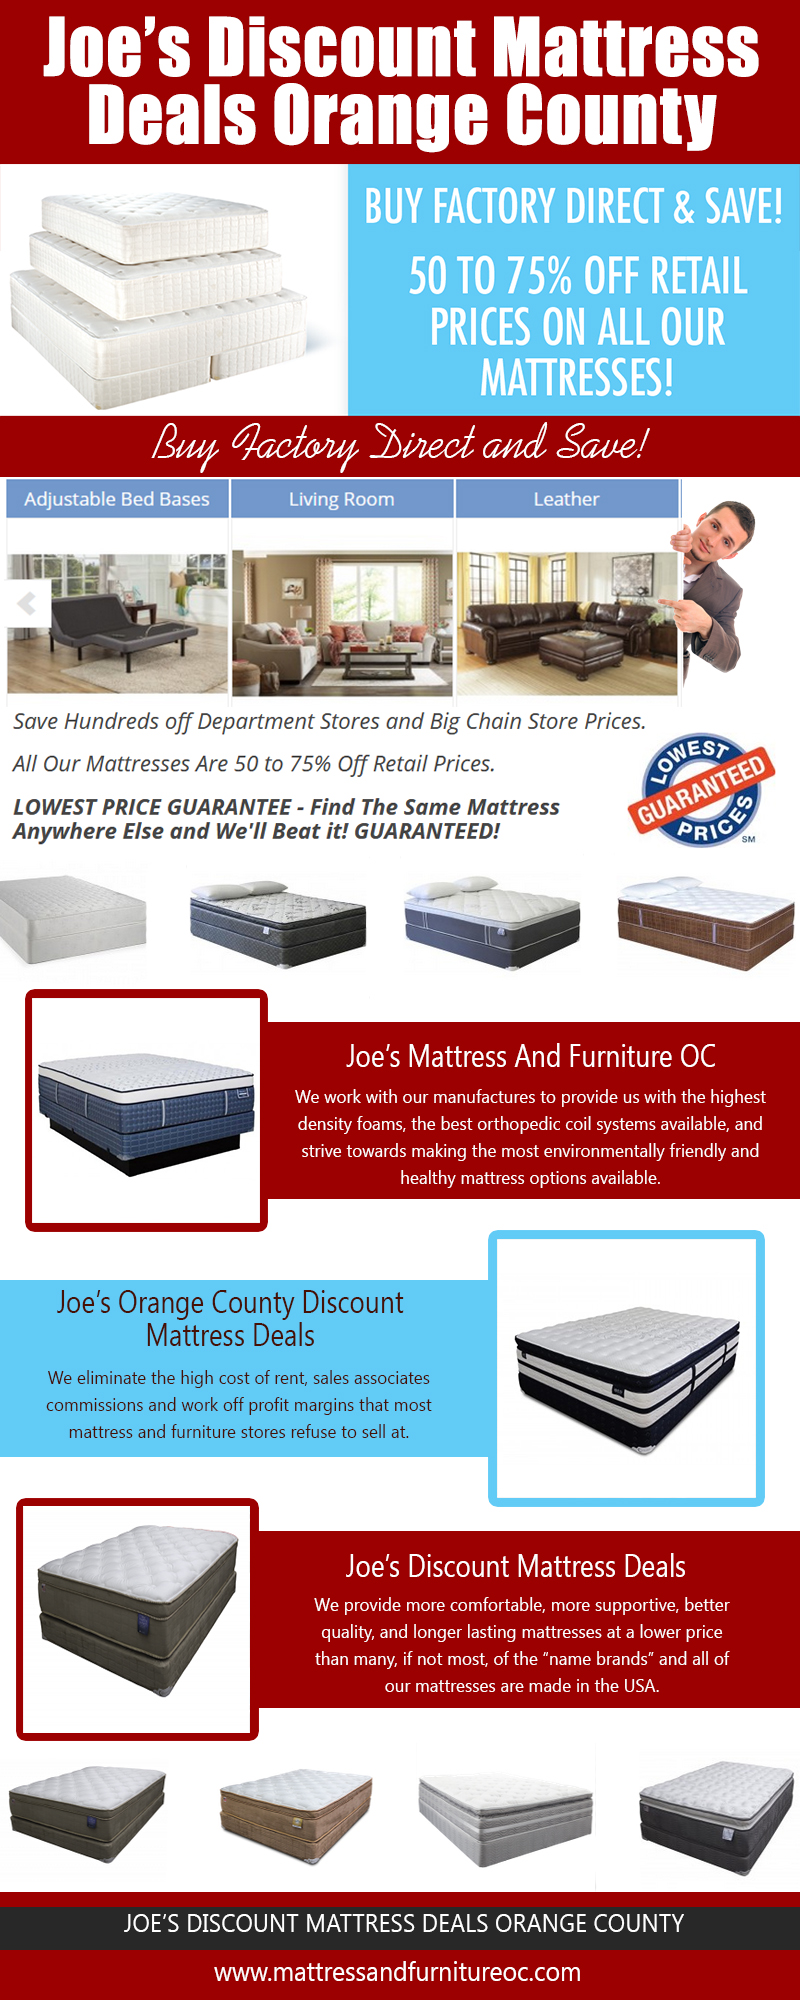 Joe's Discount Mattress Deals Orange County